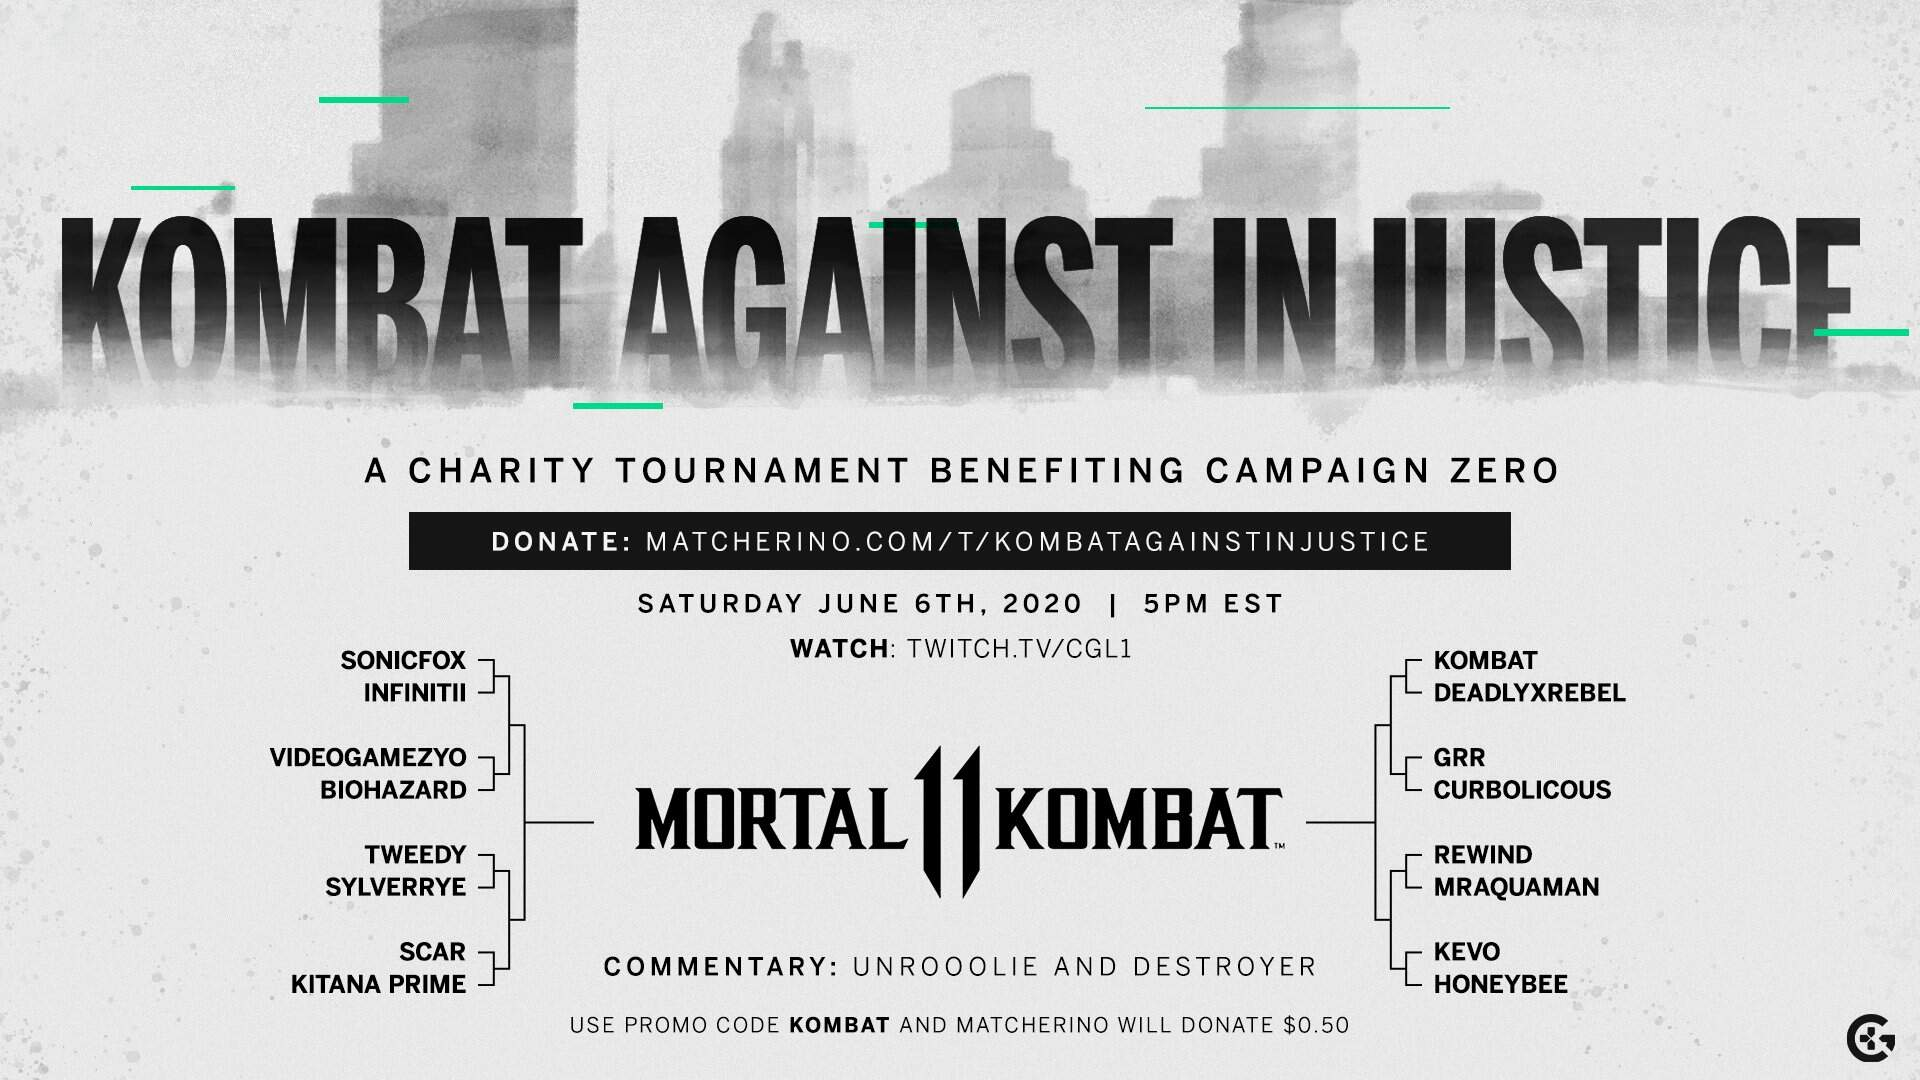 Mortal Kombat 11 Charity Tournament Will Kombat Against Injustice This Weekend